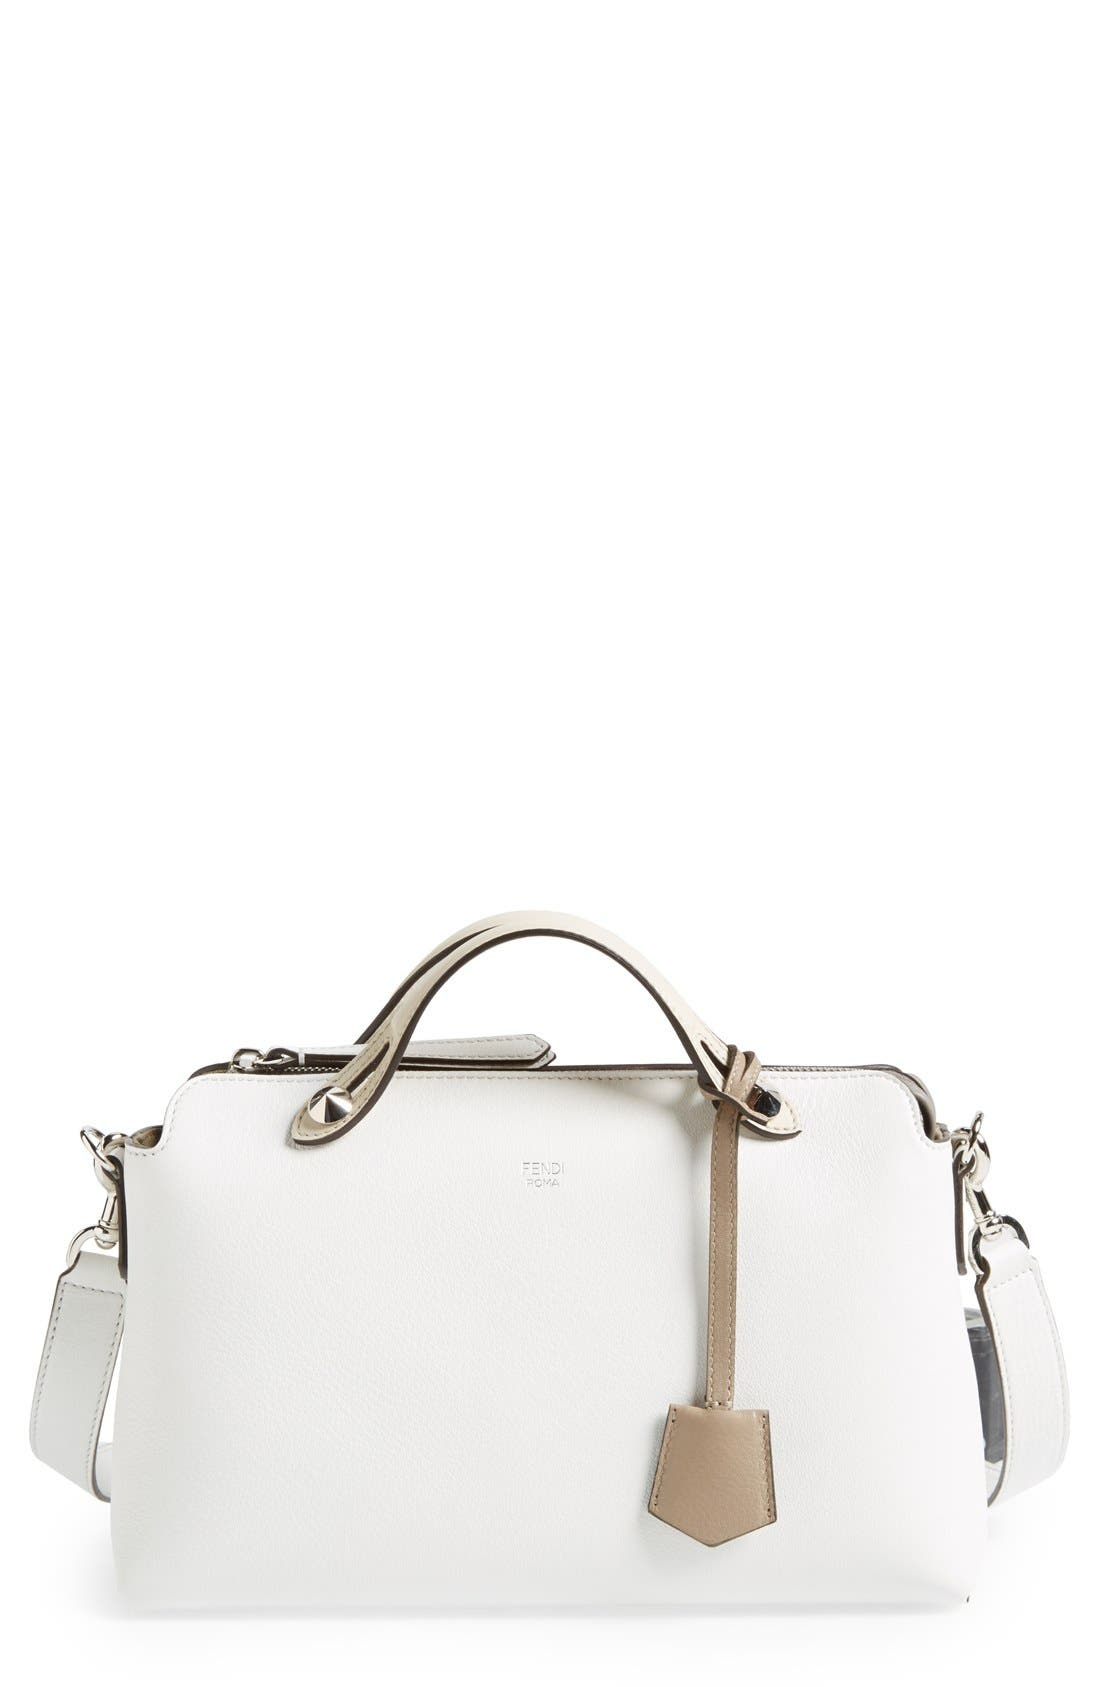 Main Image - Fendi 'Small By the Way' Shoulder Bag